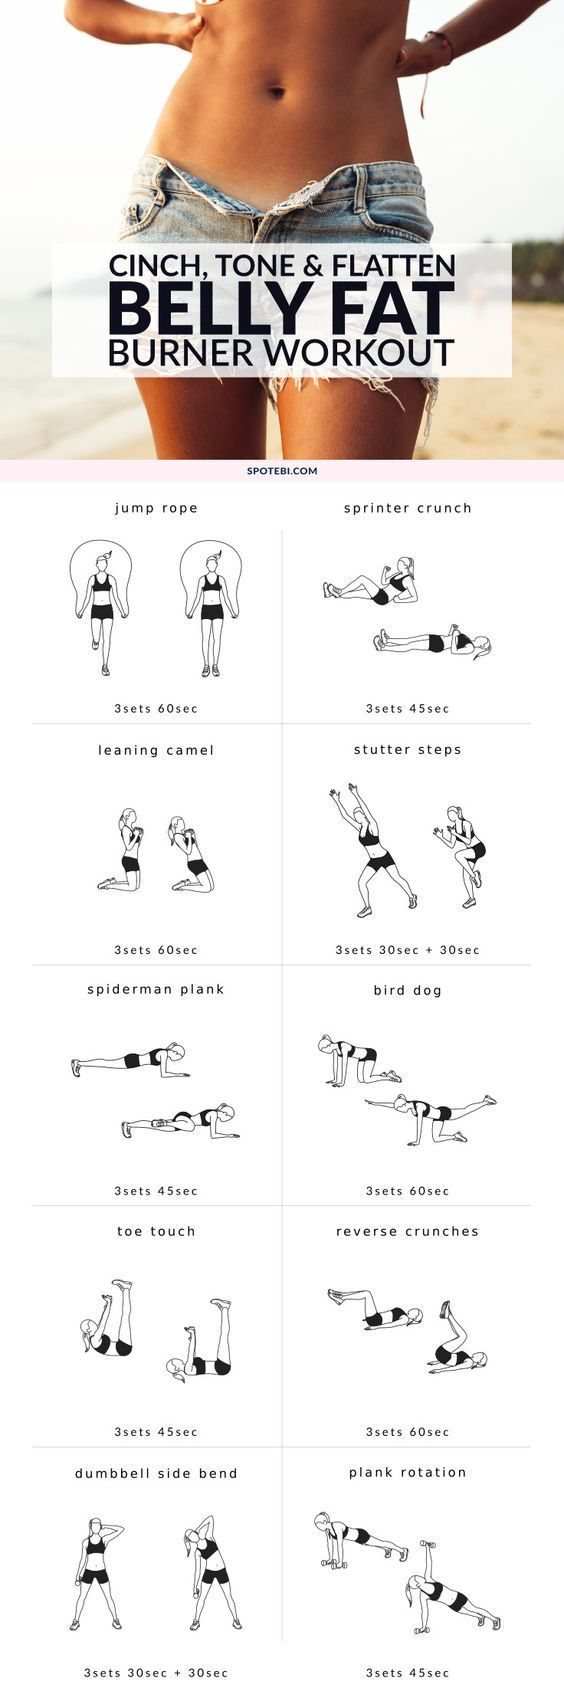 See more here ► https://www.youtube.com/watch?v=0KRTOVZ92_4 Tags: green tea and weight loss, best foods for weight loss, weight loss retreats - Flatten your abs and blast calories with these 10 moves! A belly fat burner workout to tone up your tummy, strengthen your core and get rid of love handles. Keep to this routine and get the flat, firm belly you always wanted! http://www.spotebi.com/workout-routines/belly-fat-burner-workout-for-women/: #exercise #diet #workout #fitness #health